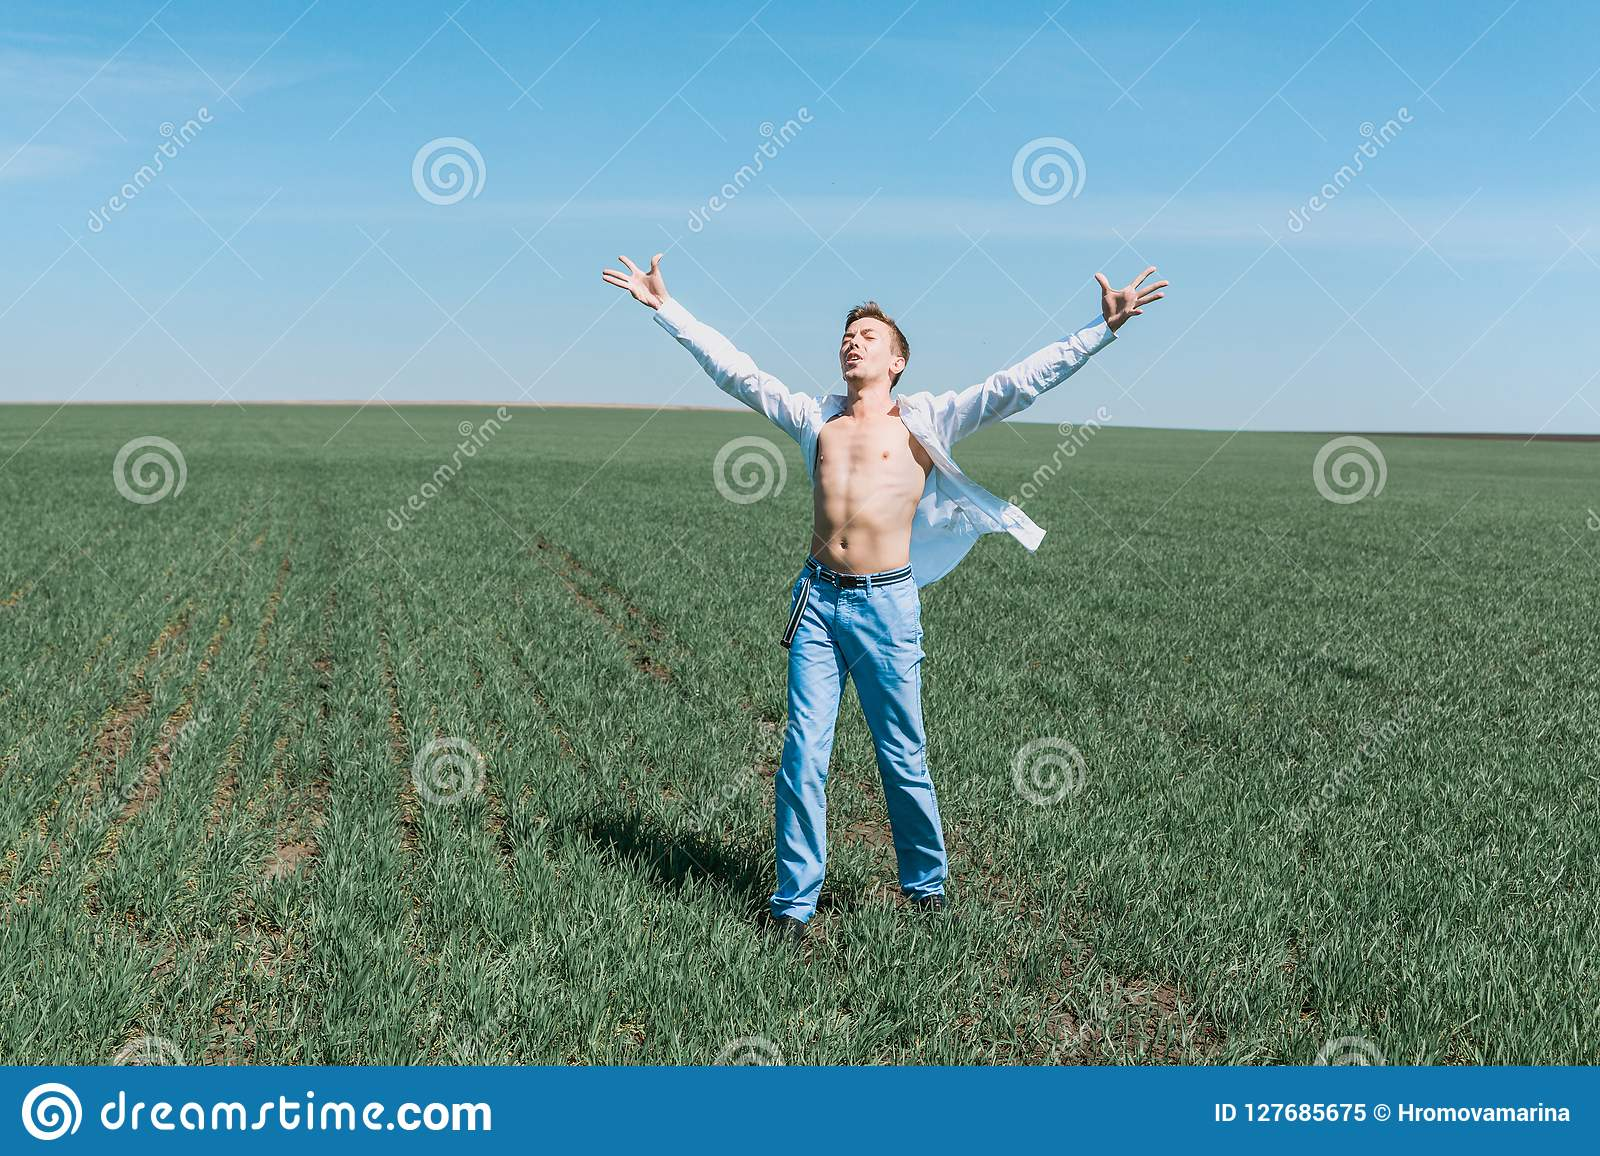 A young attractive sporty man in a white shirt and blue jeans stands in the field.